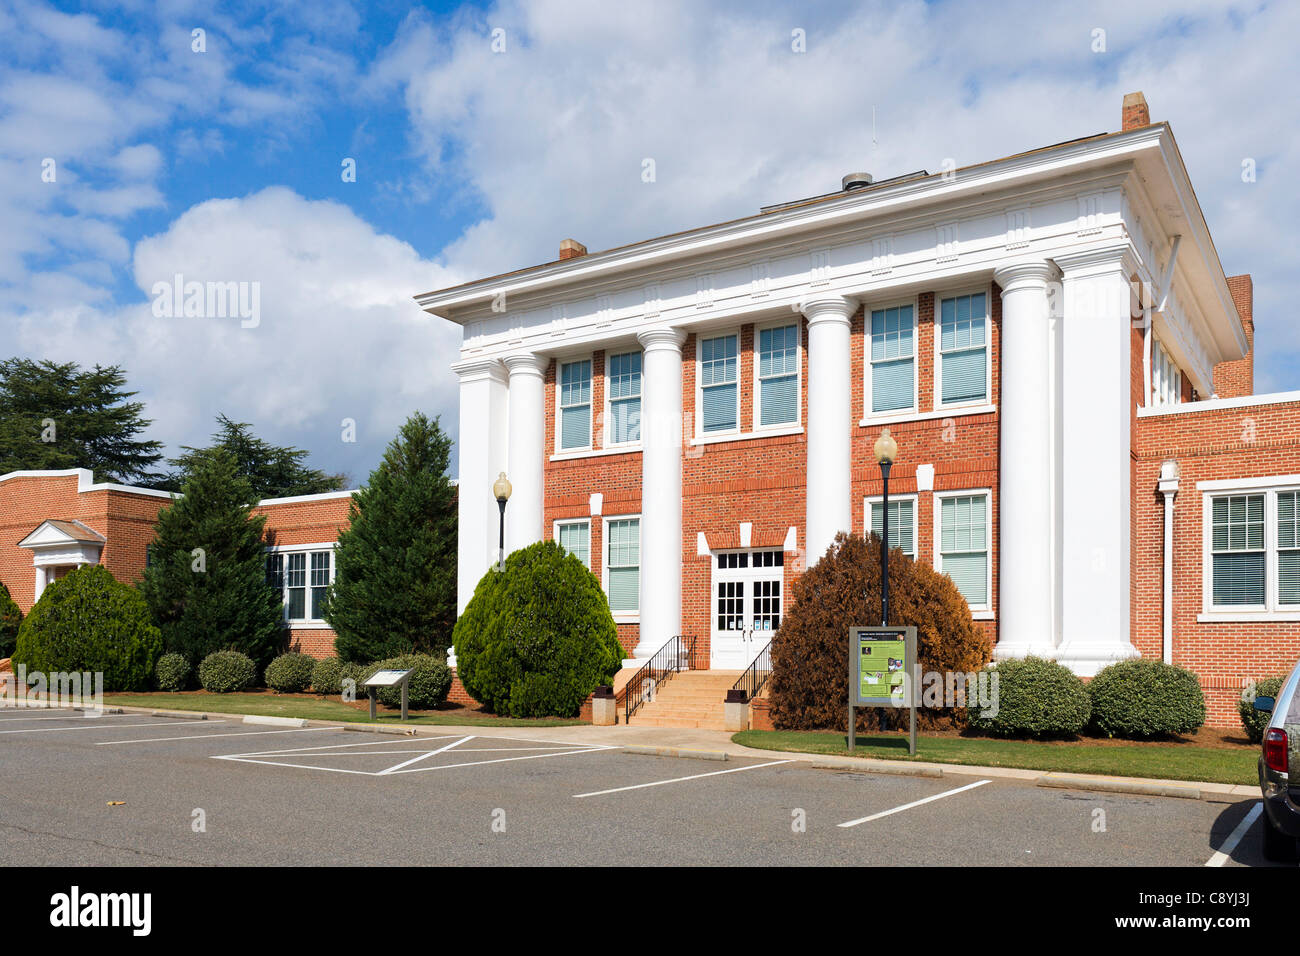 Jimmy Carter Visitor Centre (anciennement Plains High School), des Plaines, Illinois, USA Photo Stock